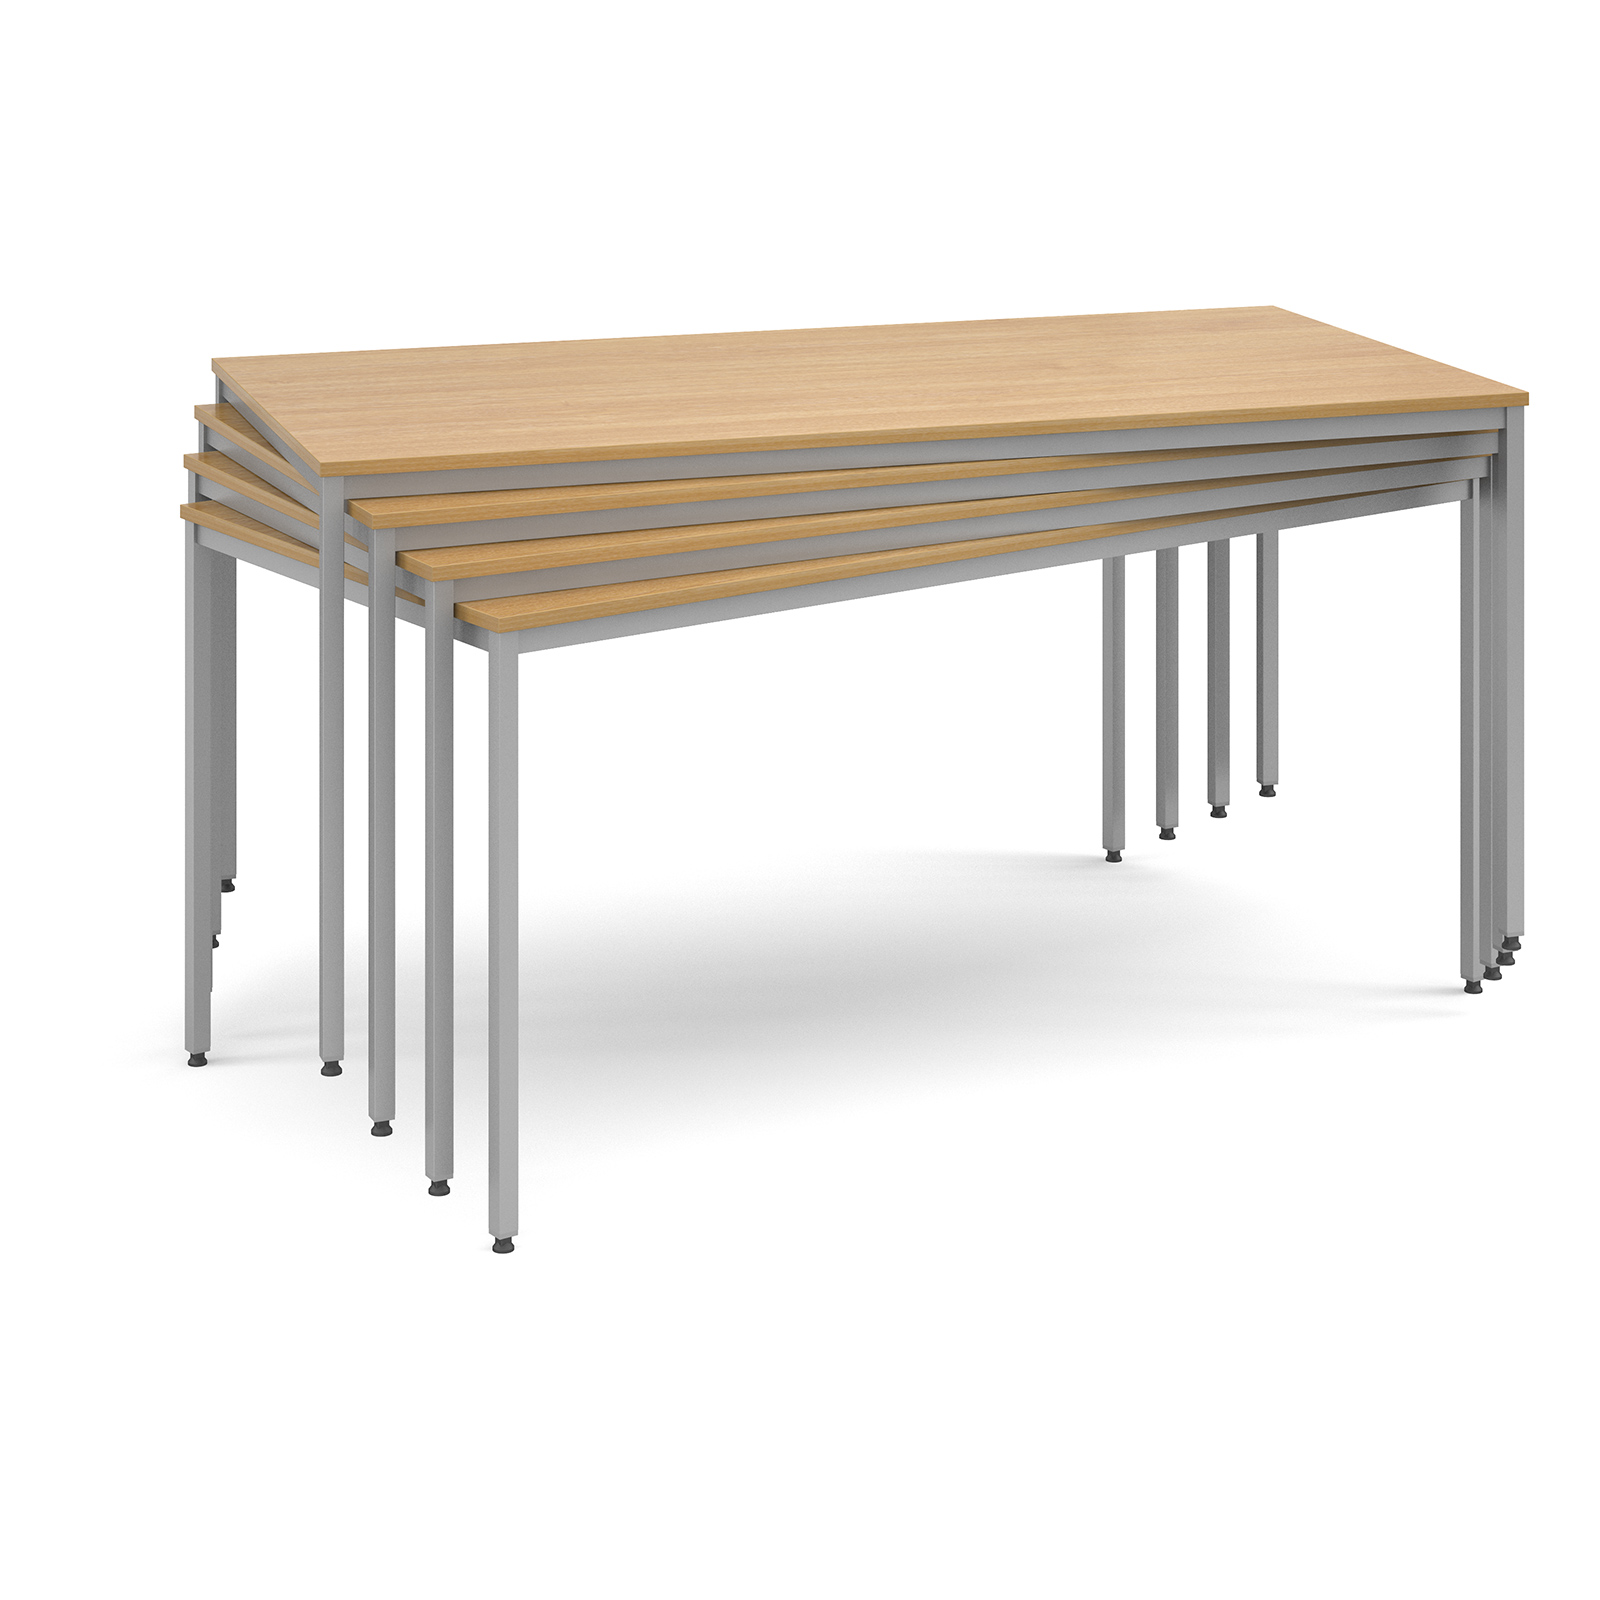 Rectangular flexi table with silver frame 1400mm x 800mm - beech